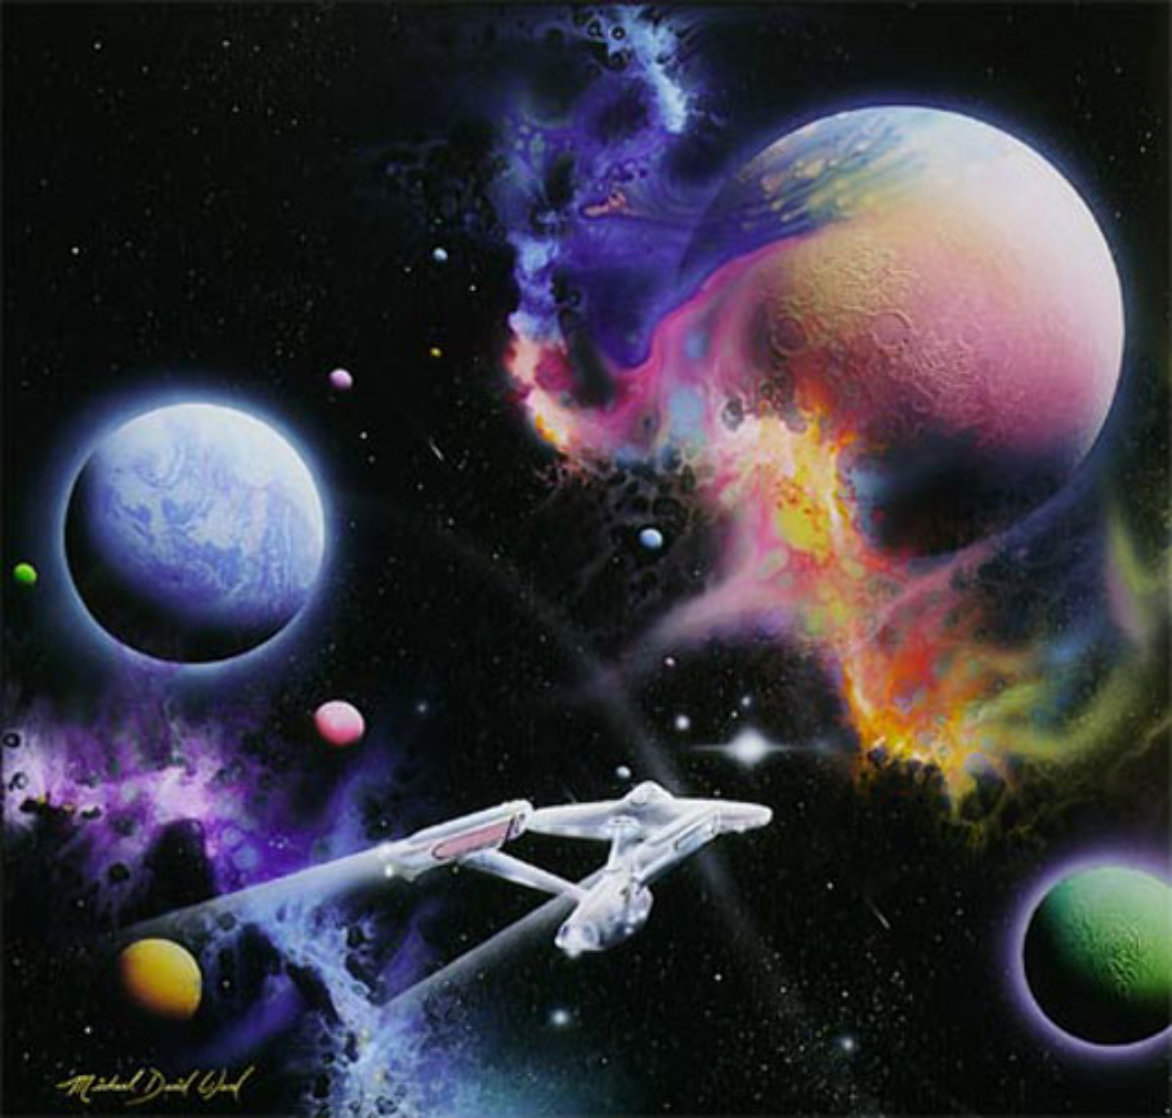 Second Star to the Right...and Straight on Till the Morning 1992 Limited Edition Print by Michael David Ward